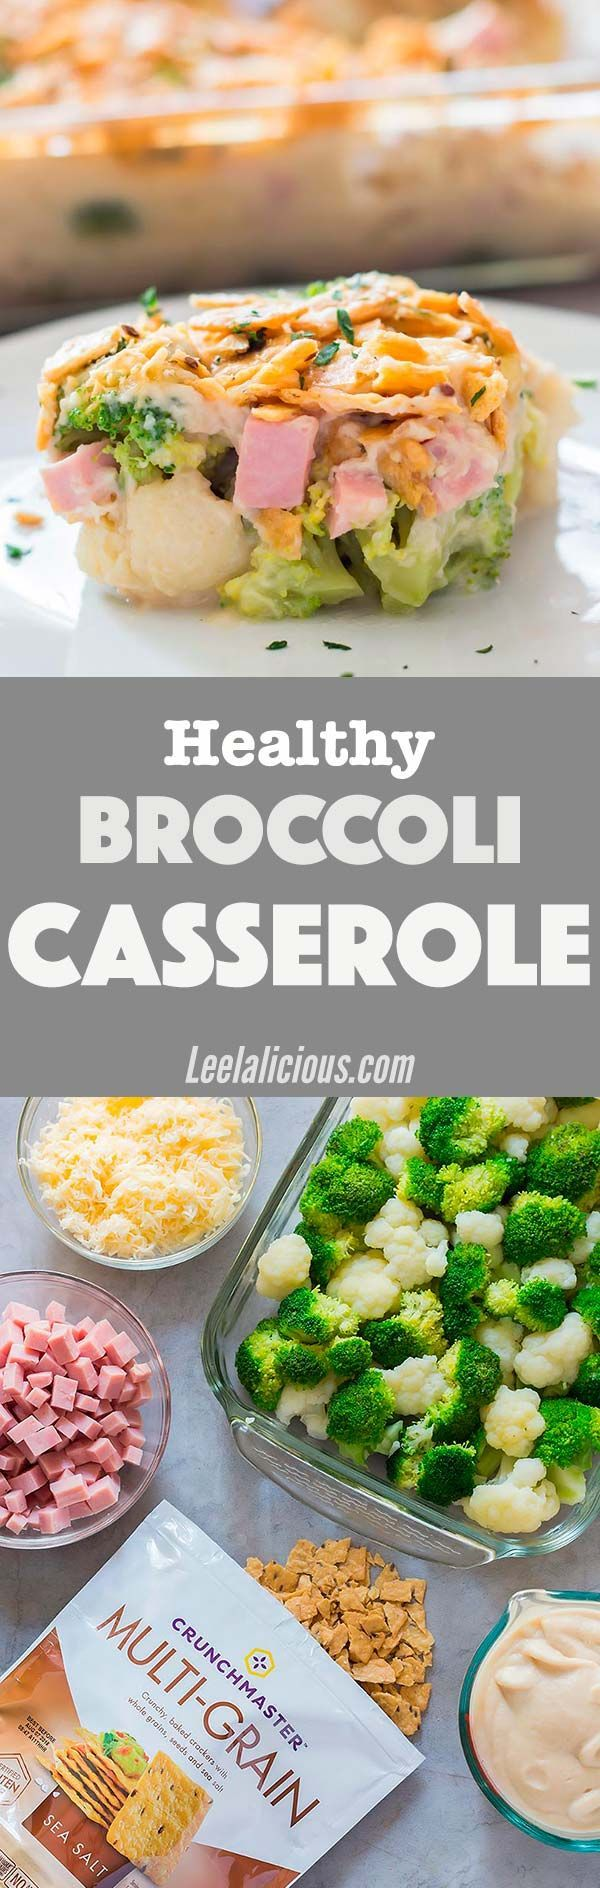 This creamy andHealthy Broccoli Casserole with ham is made with creamy cauliflower sauce. No cream or cans of cream soup whatsoever. A perfect healthy veggie-loaded dish to repurpose leftover ham.   Sponsored | Recipe | Easy Dinners | Meal | Chicken | Vegetarian Option | Gluten Free | Clean Eating | Crunchmaster Crackers | Bake